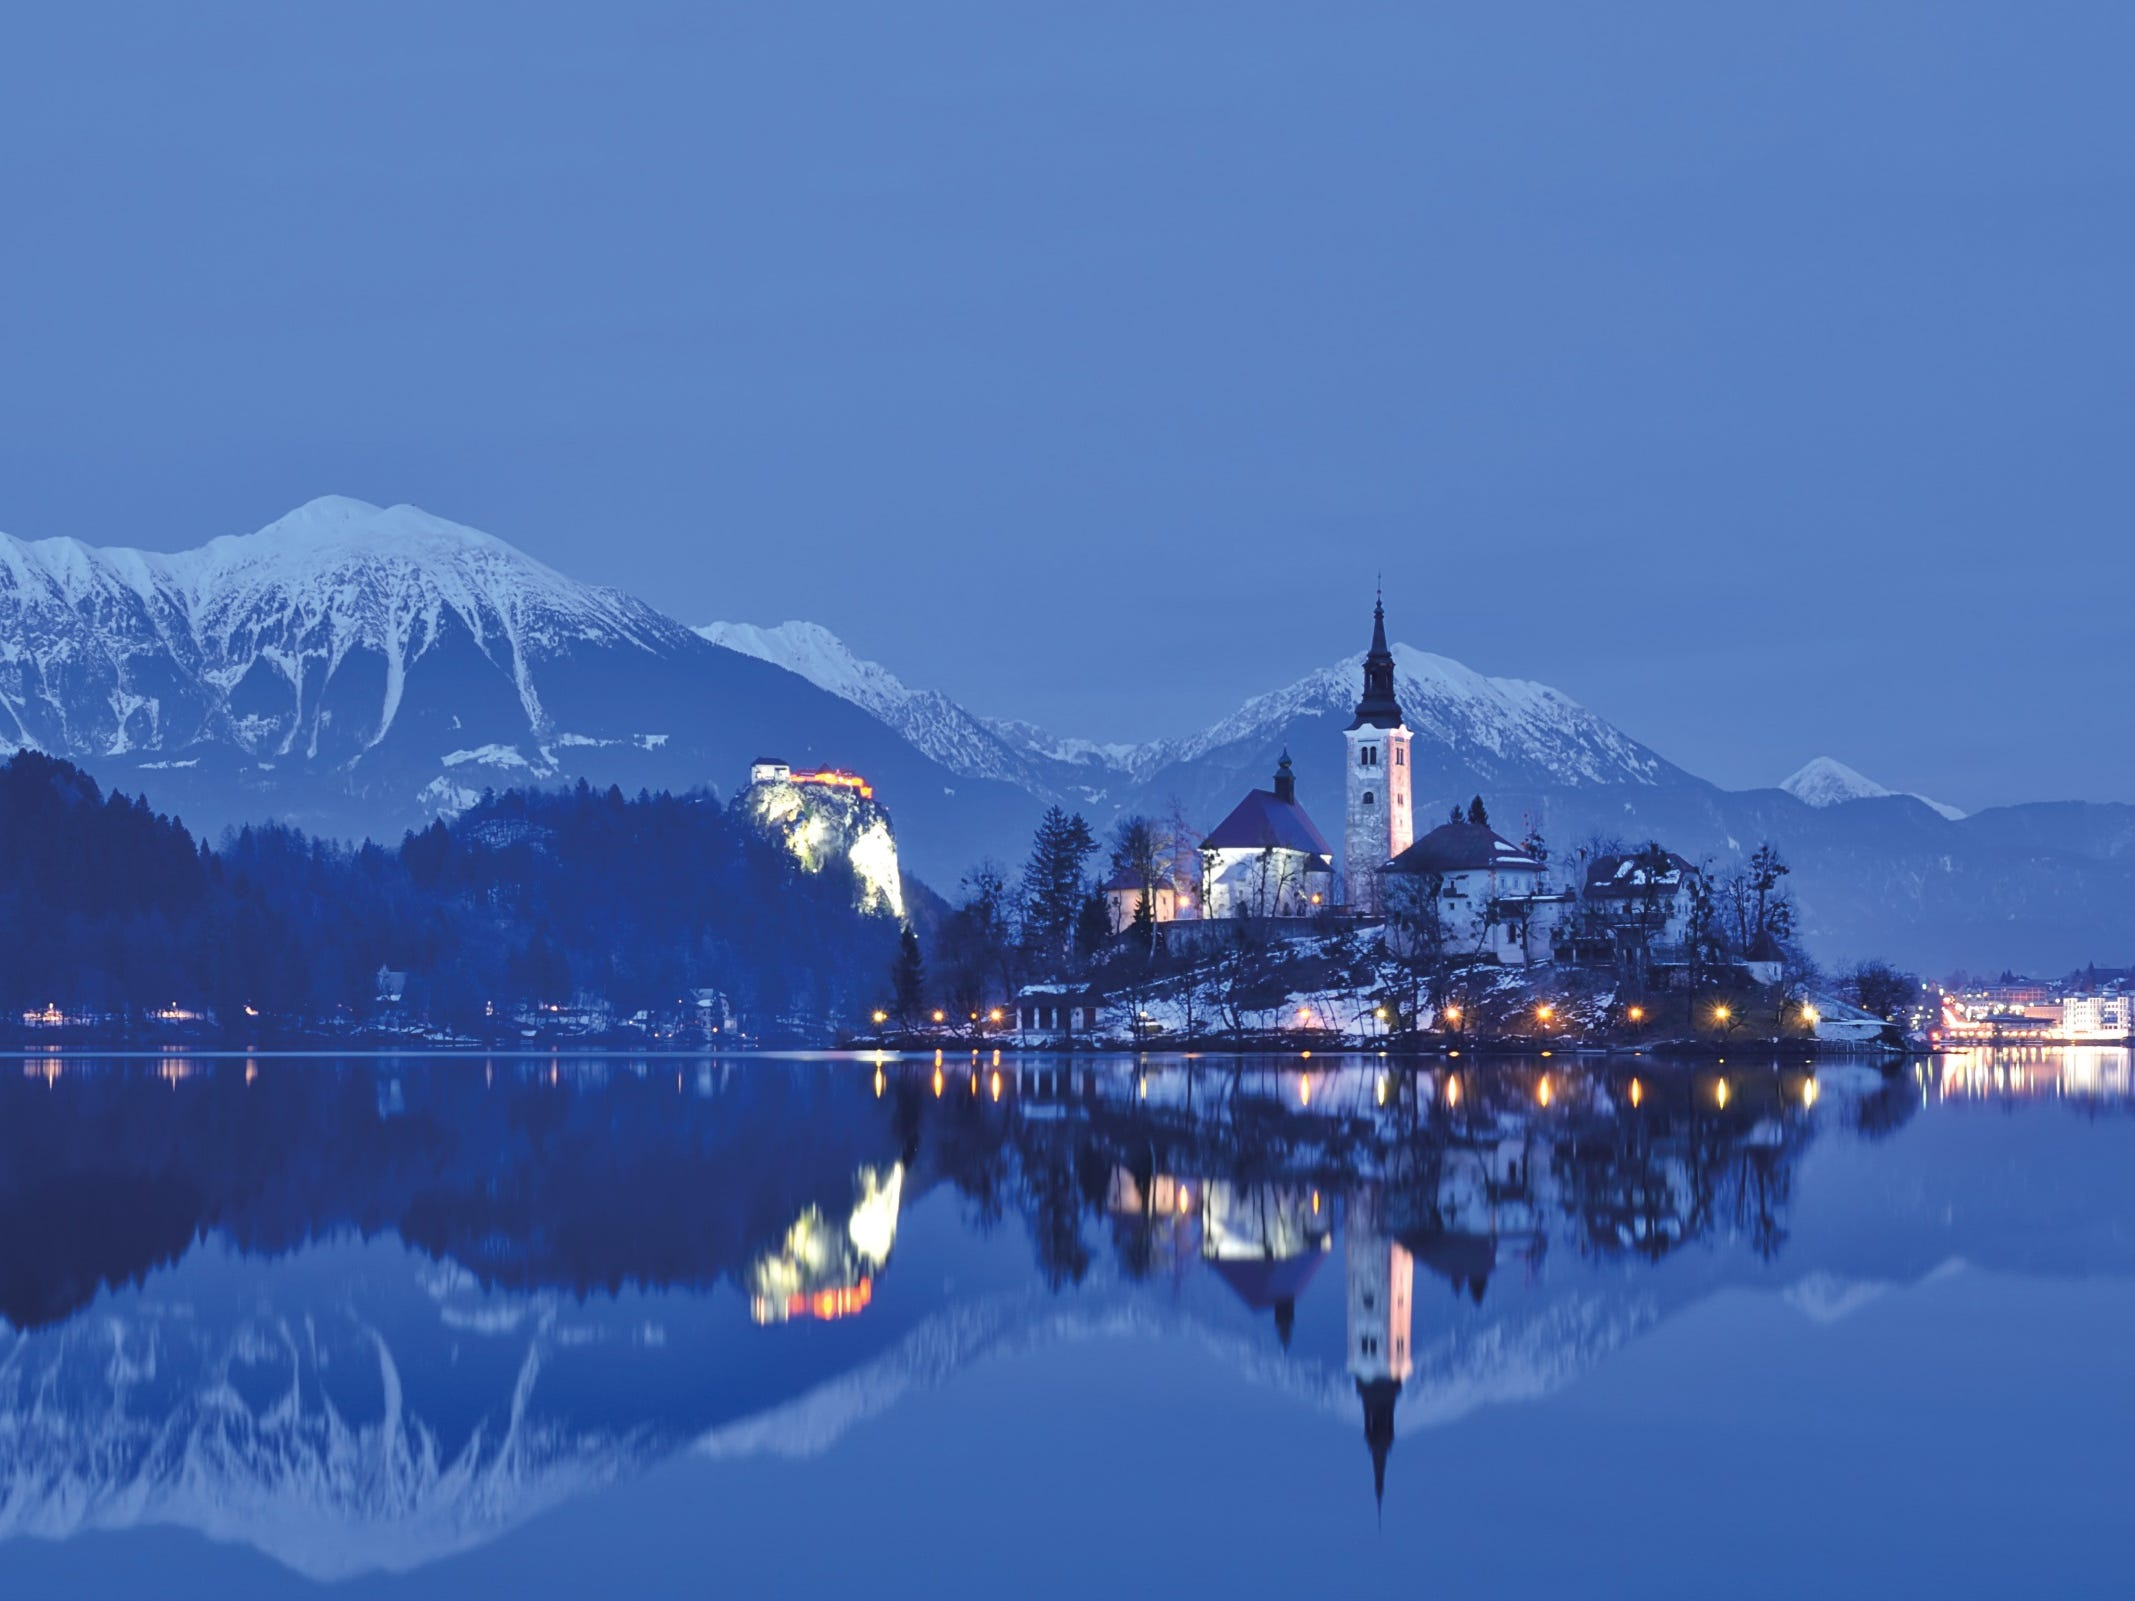 No. 10 on the list of best value places to visit in 2019 is Slovenia.